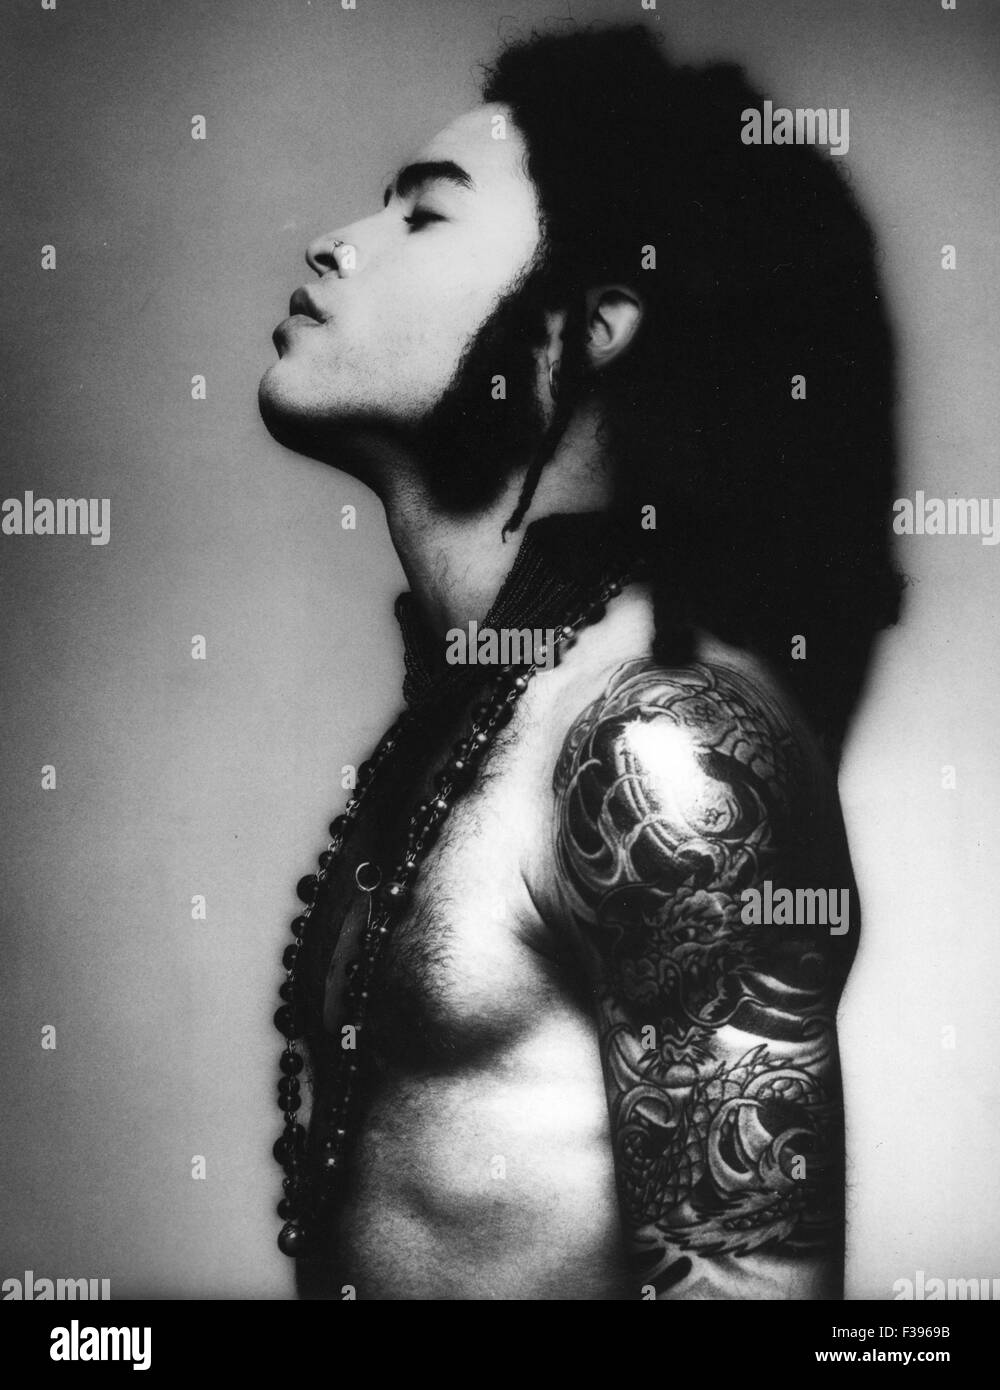 Lenny kravitz promotional photo of us musician about 1995 stock image